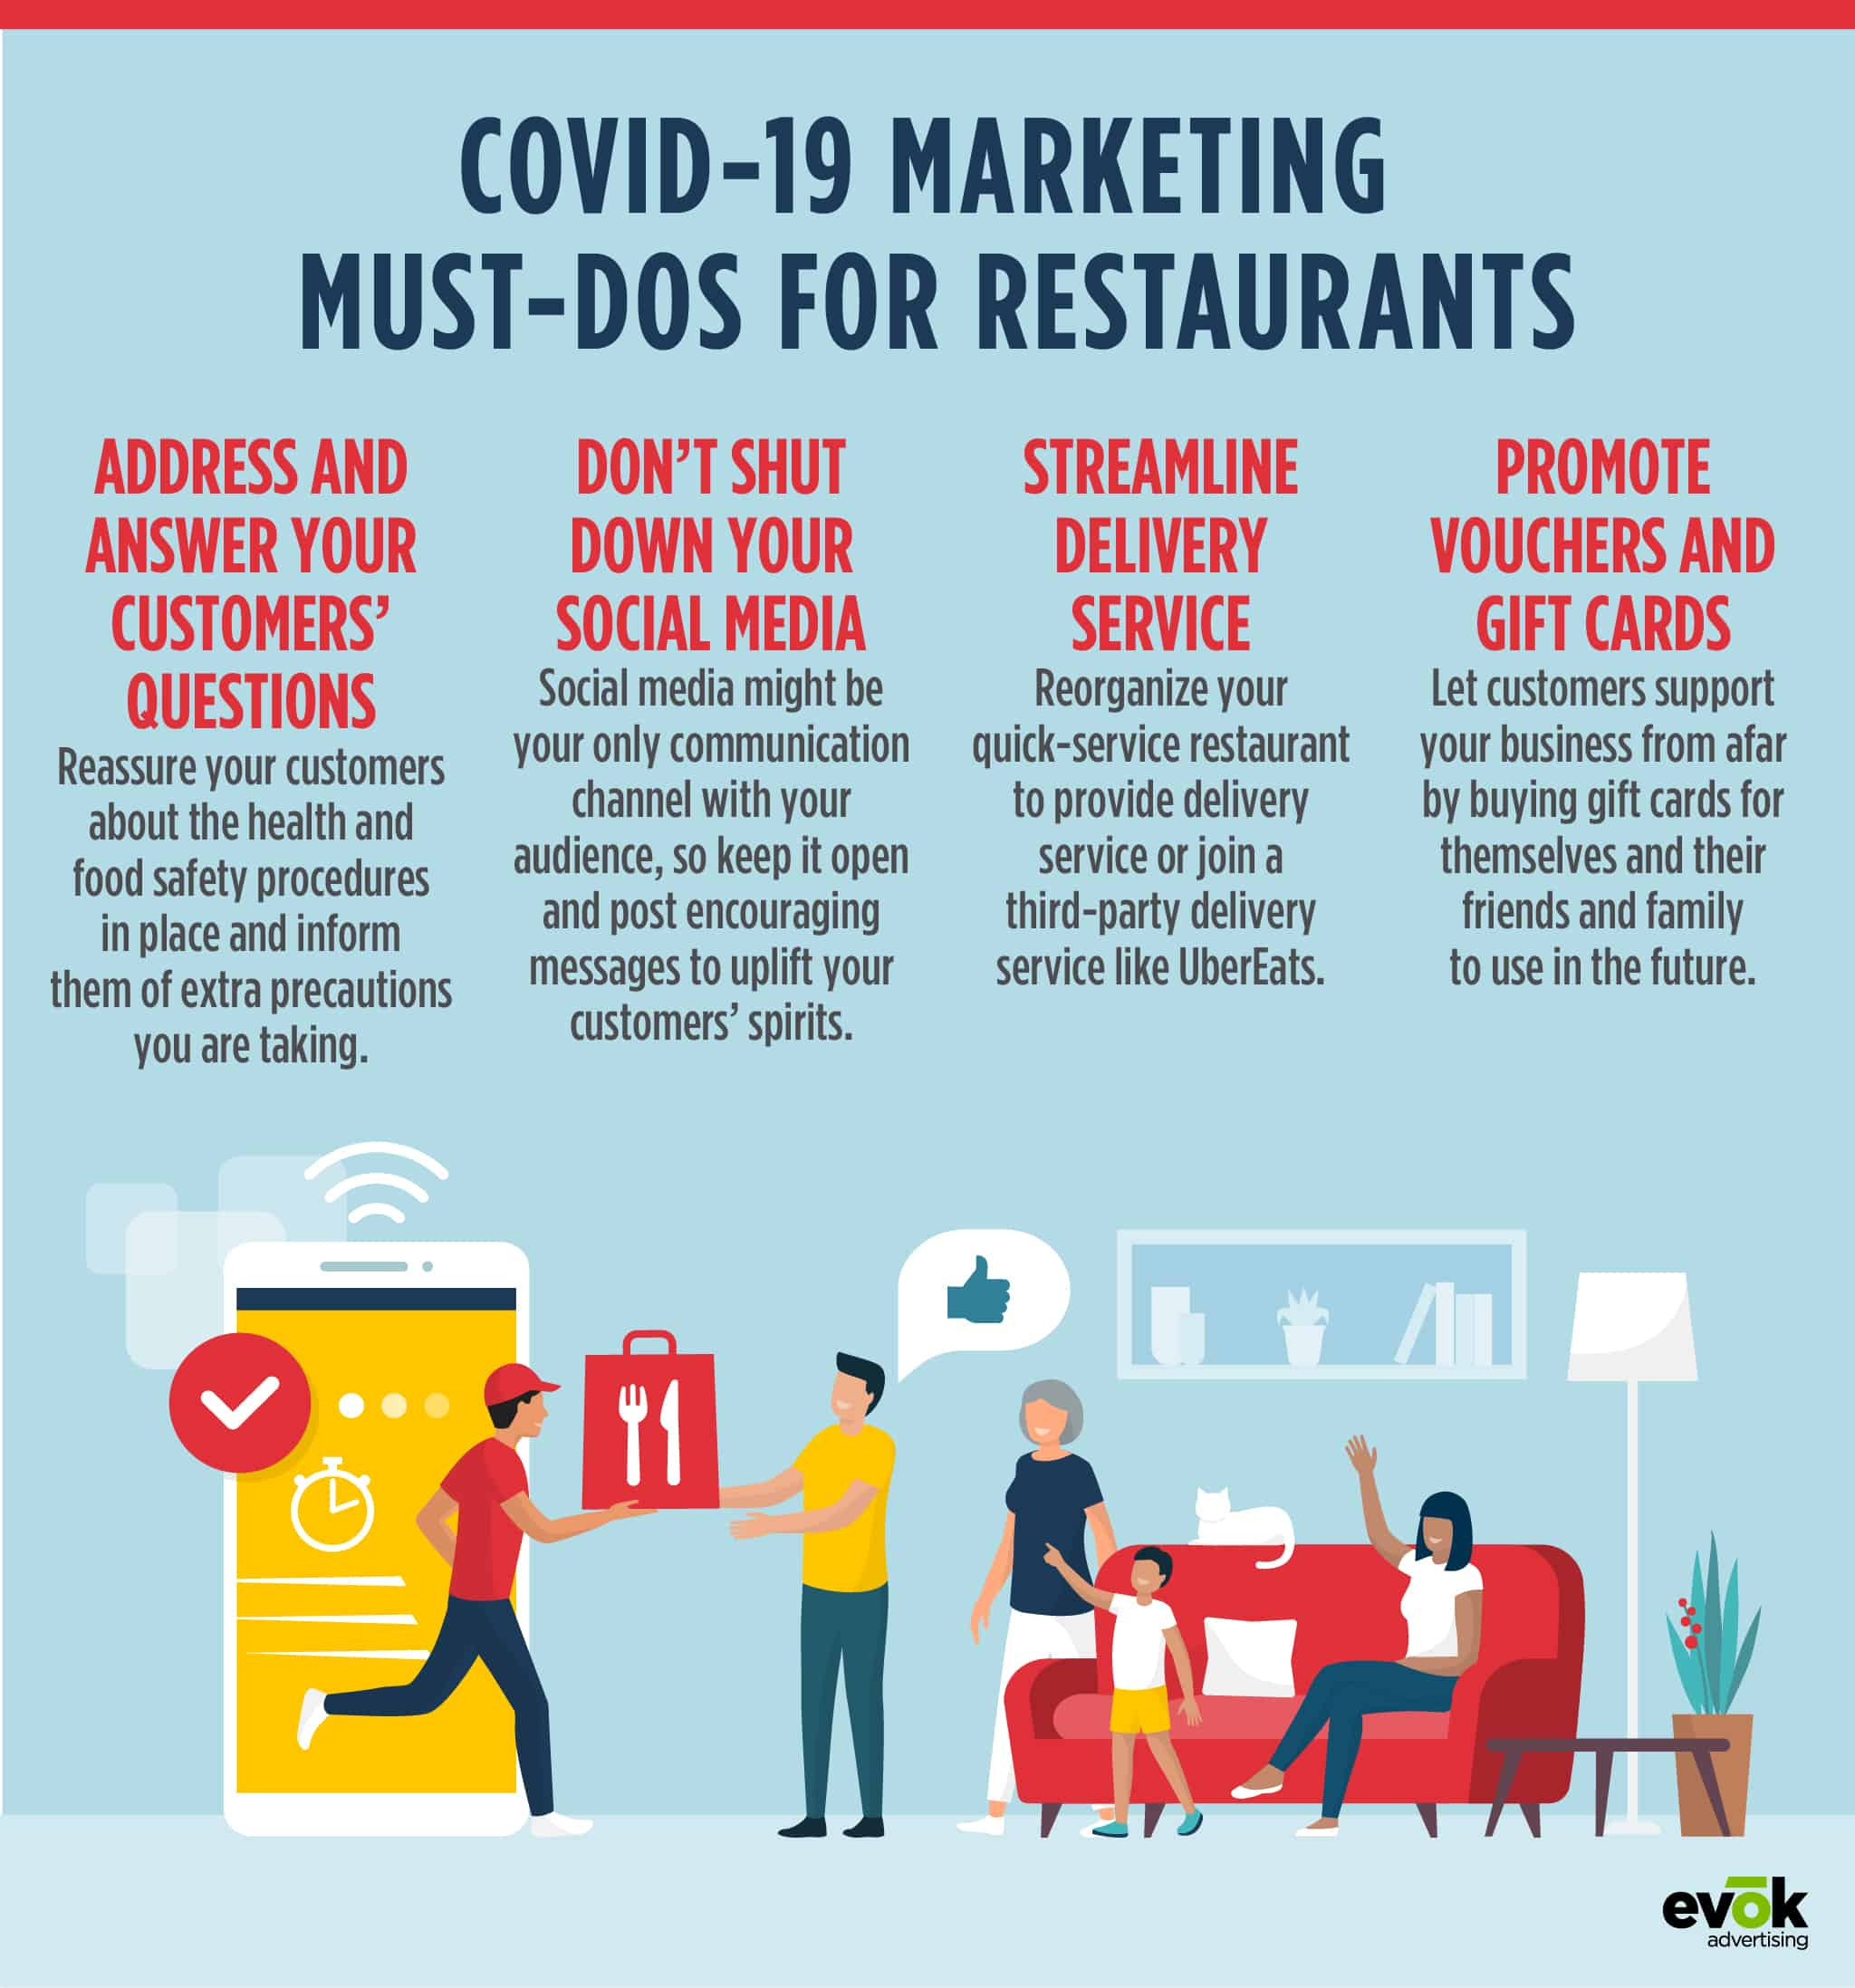 COVID-19 Marketing Must-Dos for Restaurants